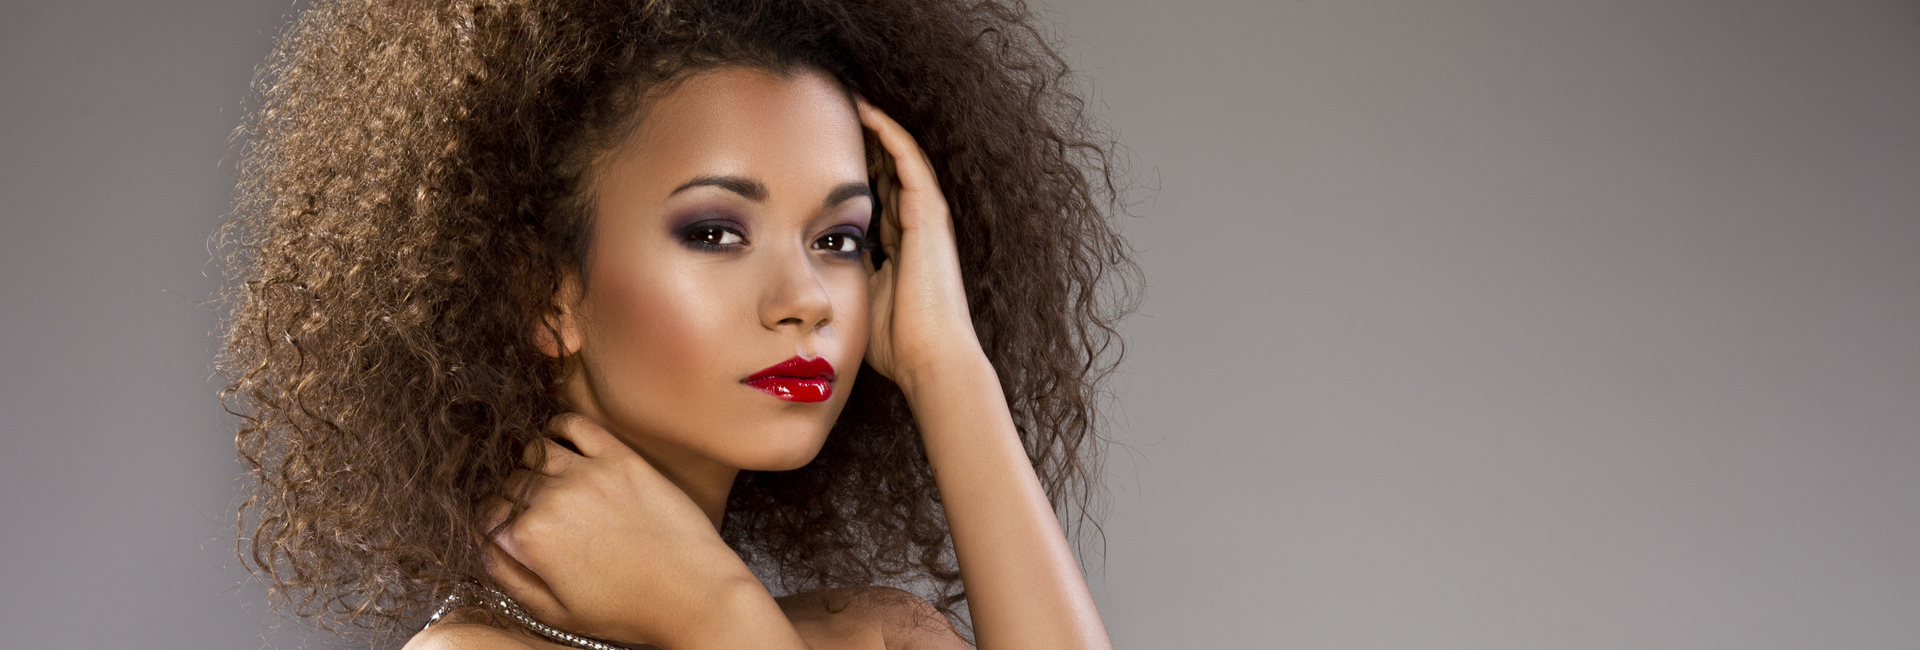 Beautiful woman with curly hair and red lipstick